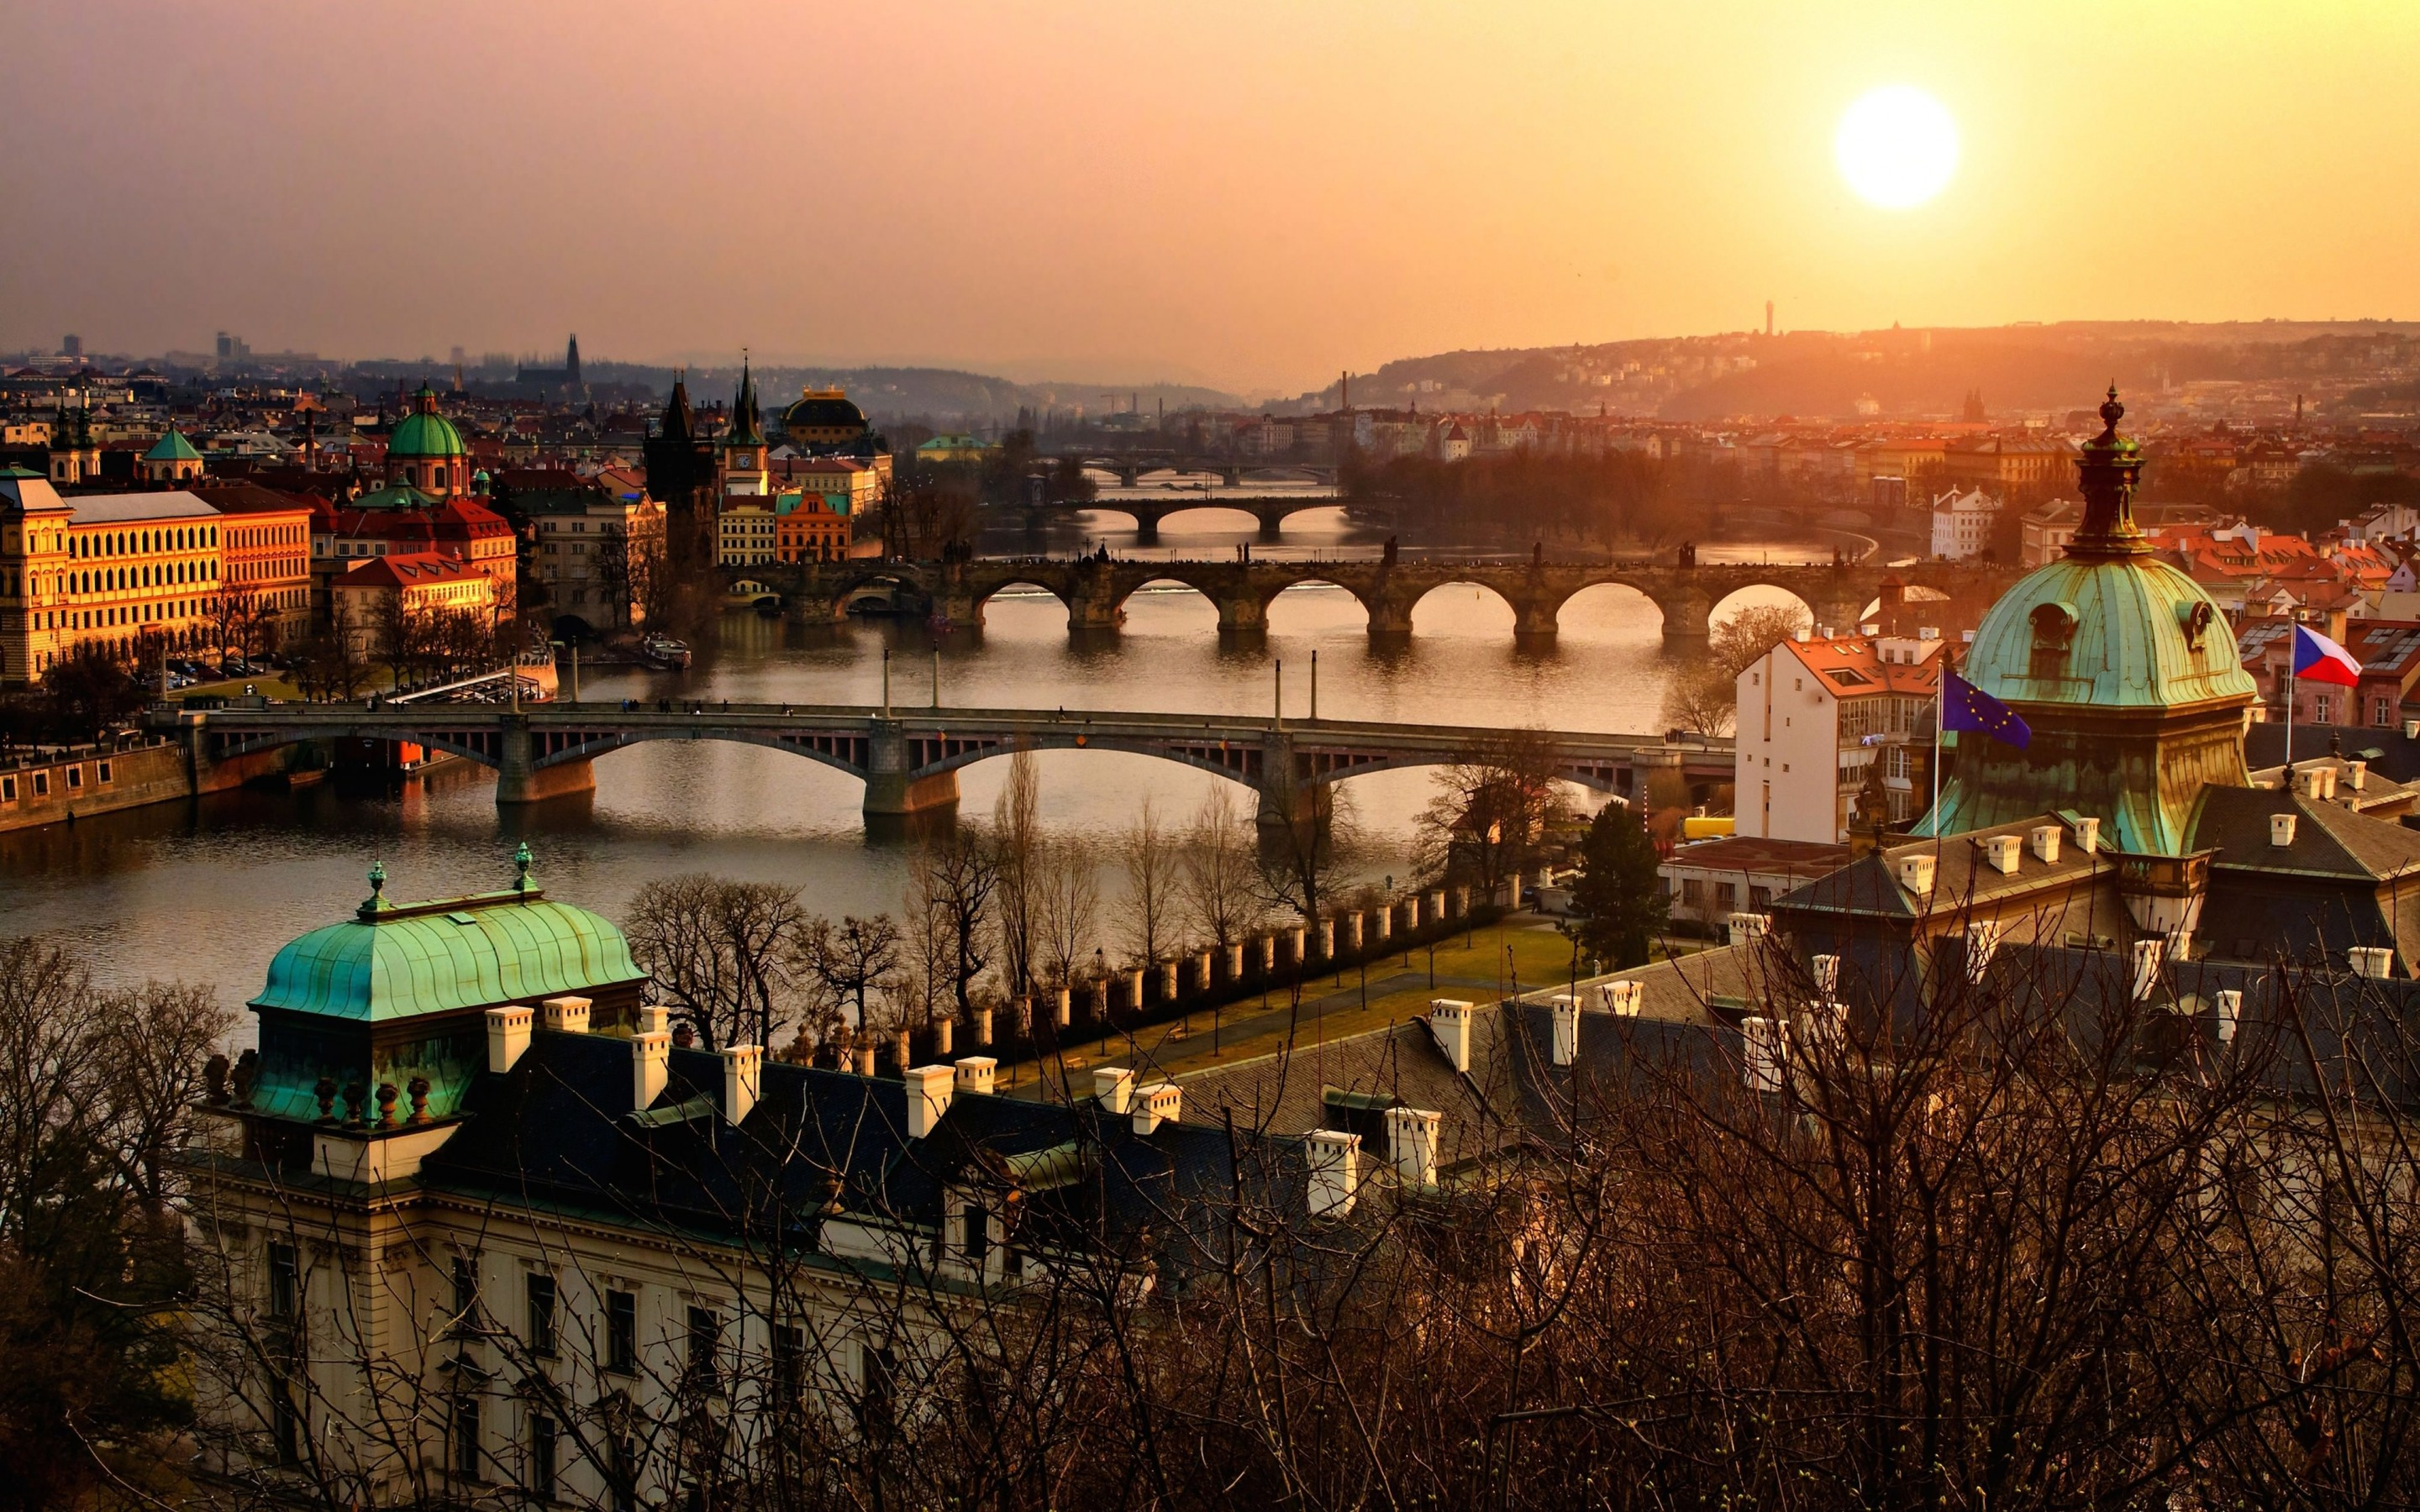 Vltava River in Prague Wallpaper for Desktop 2880x1800